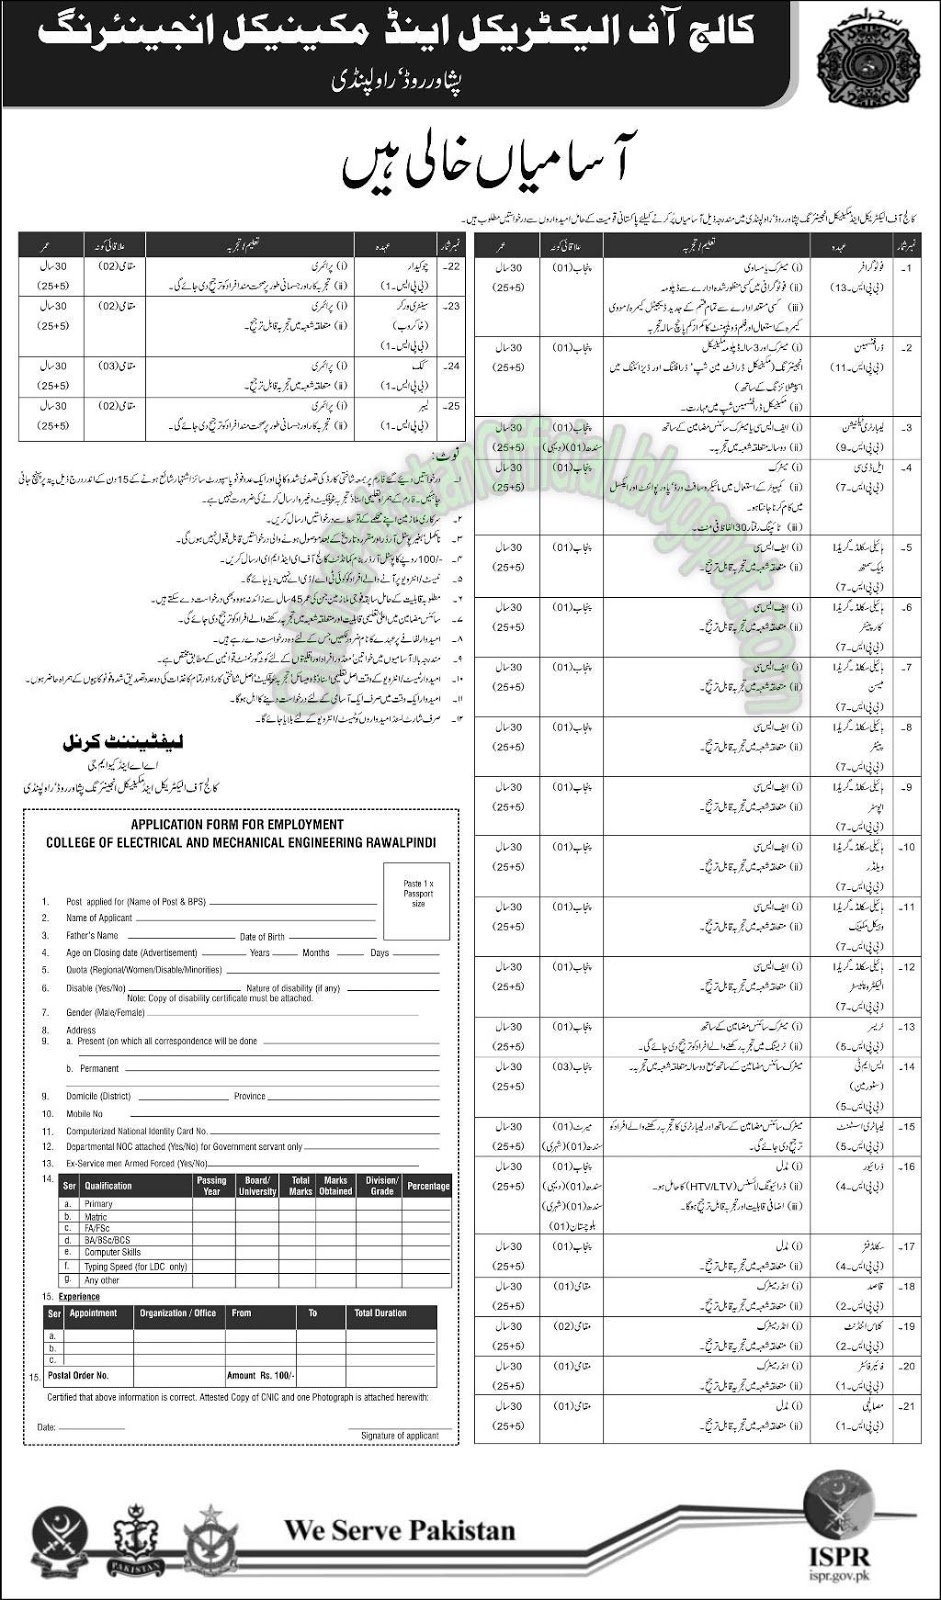 Pakistan Army -College Of Electrical-Rawalpindi jobs